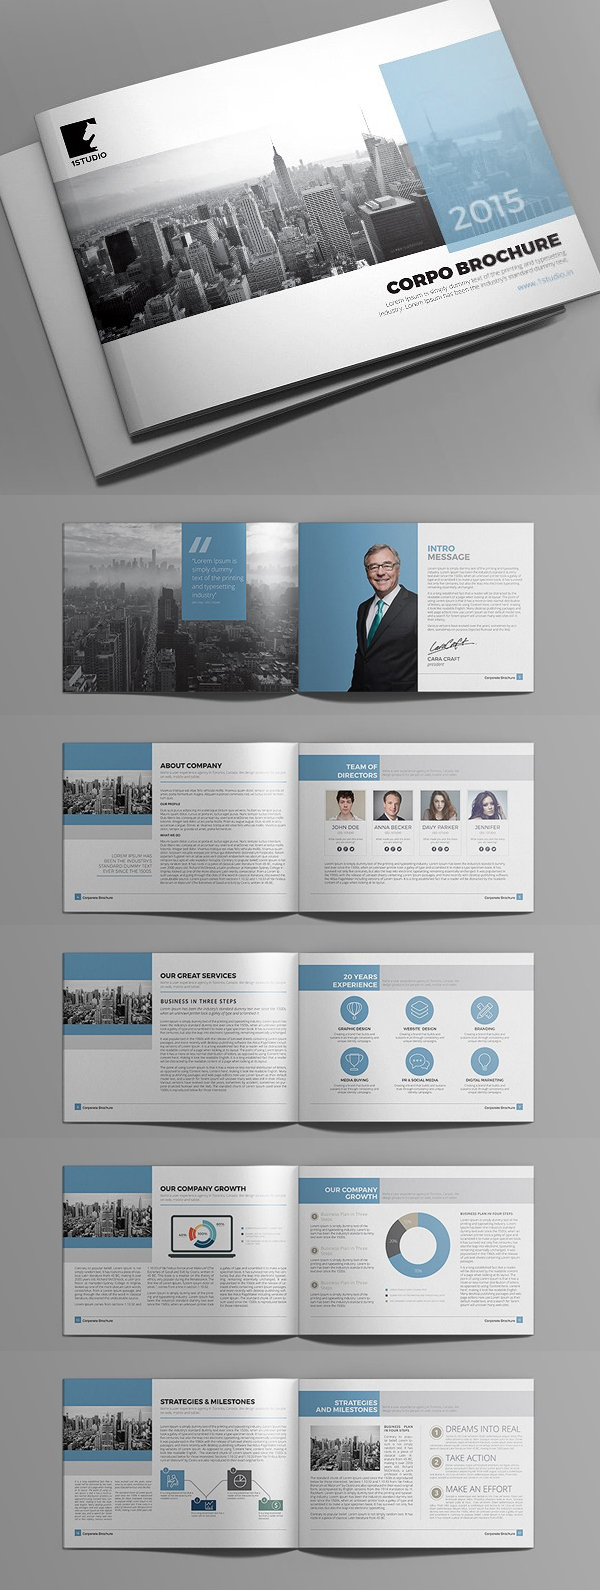 Landscape Brochure / Annual Report 2017 Template